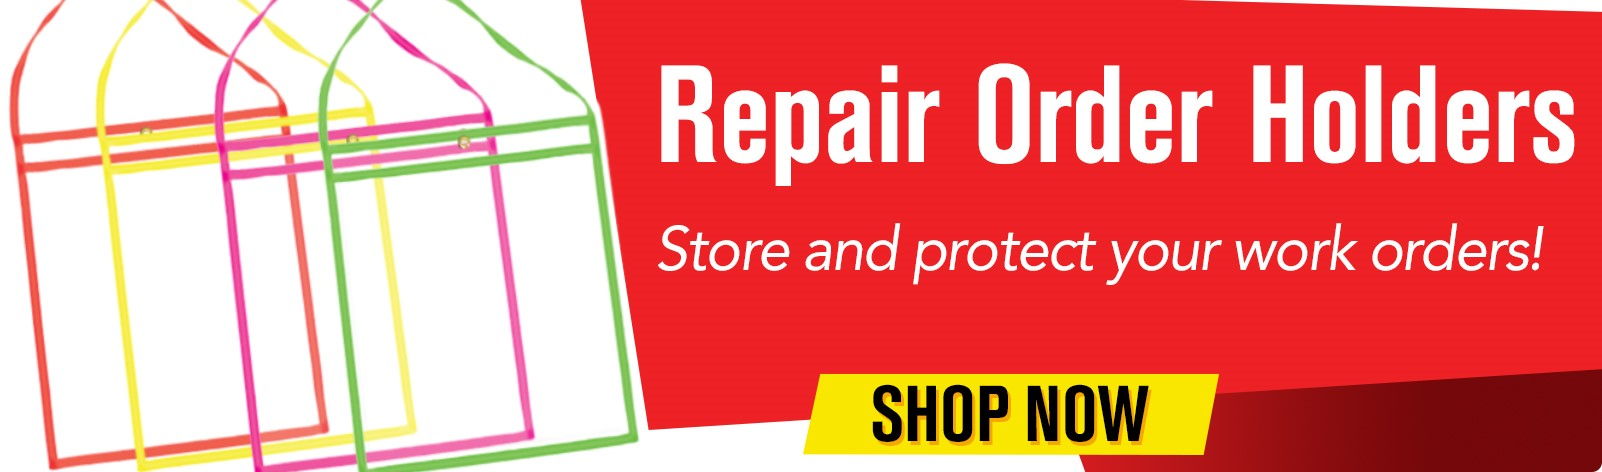 Repair Order Holders - Store and protect your work orders!